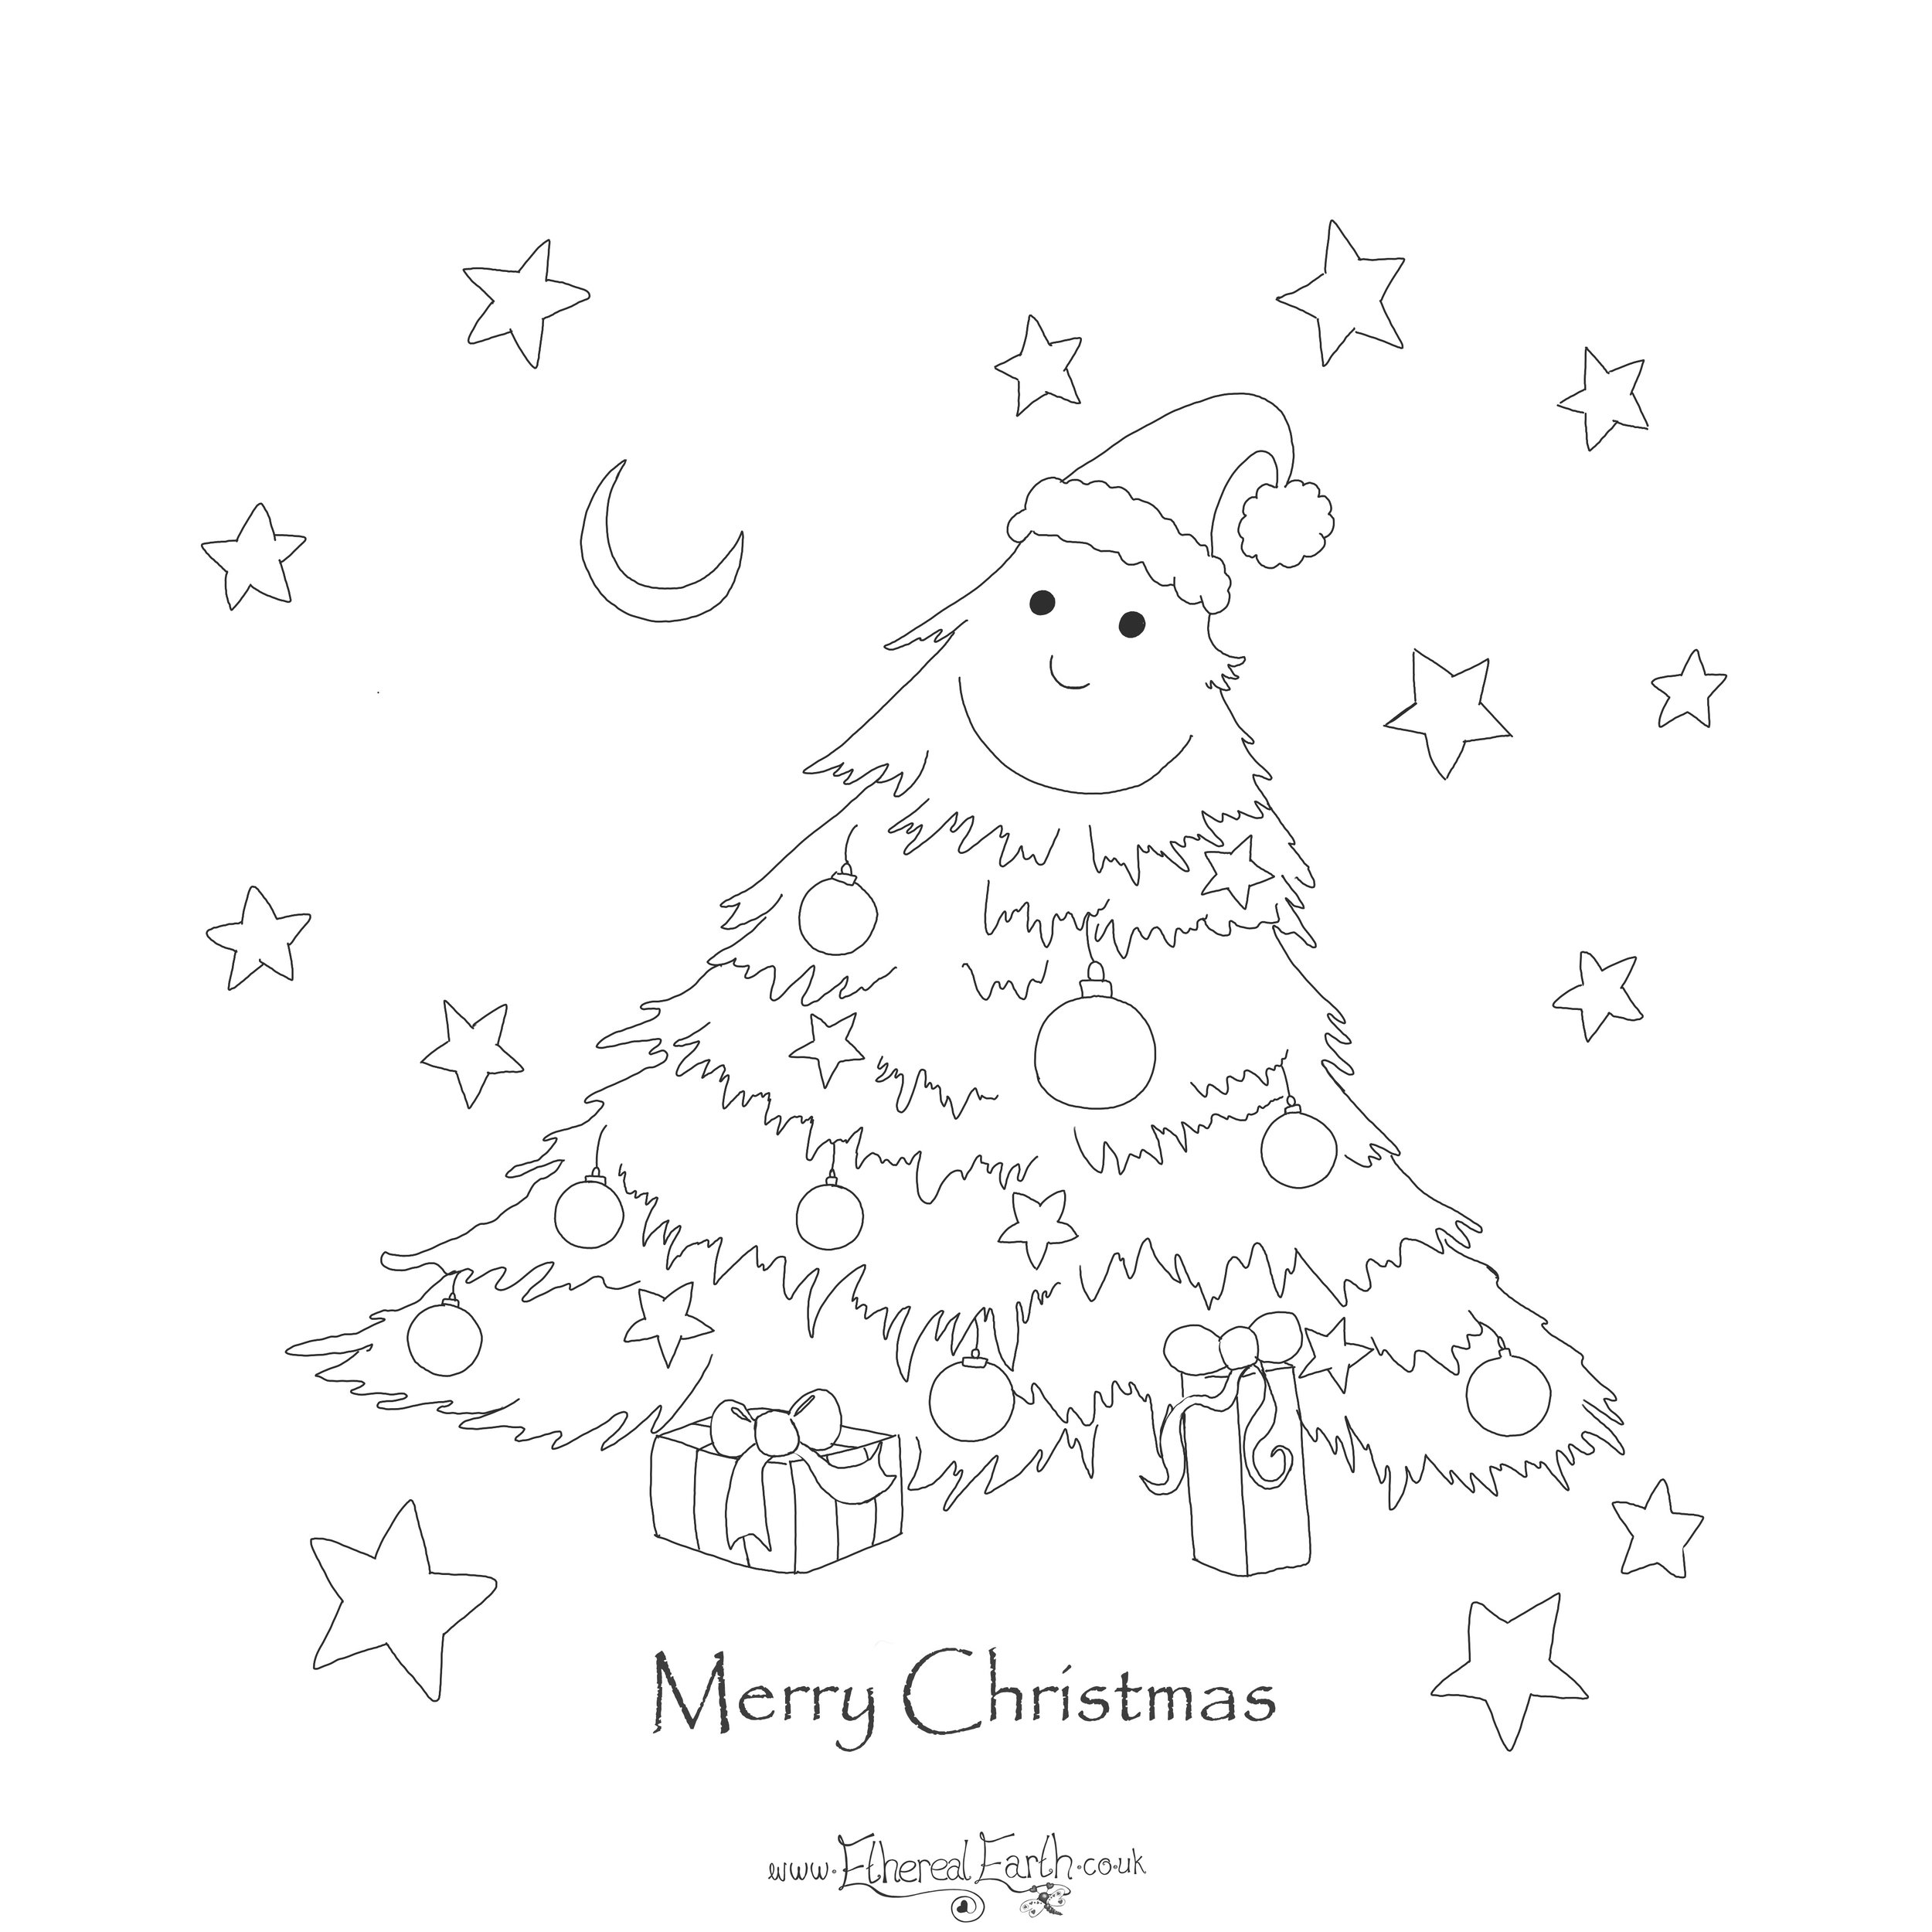 Merry Christmas - Free colouring in sheet, just click on the picture to download the file to print out.